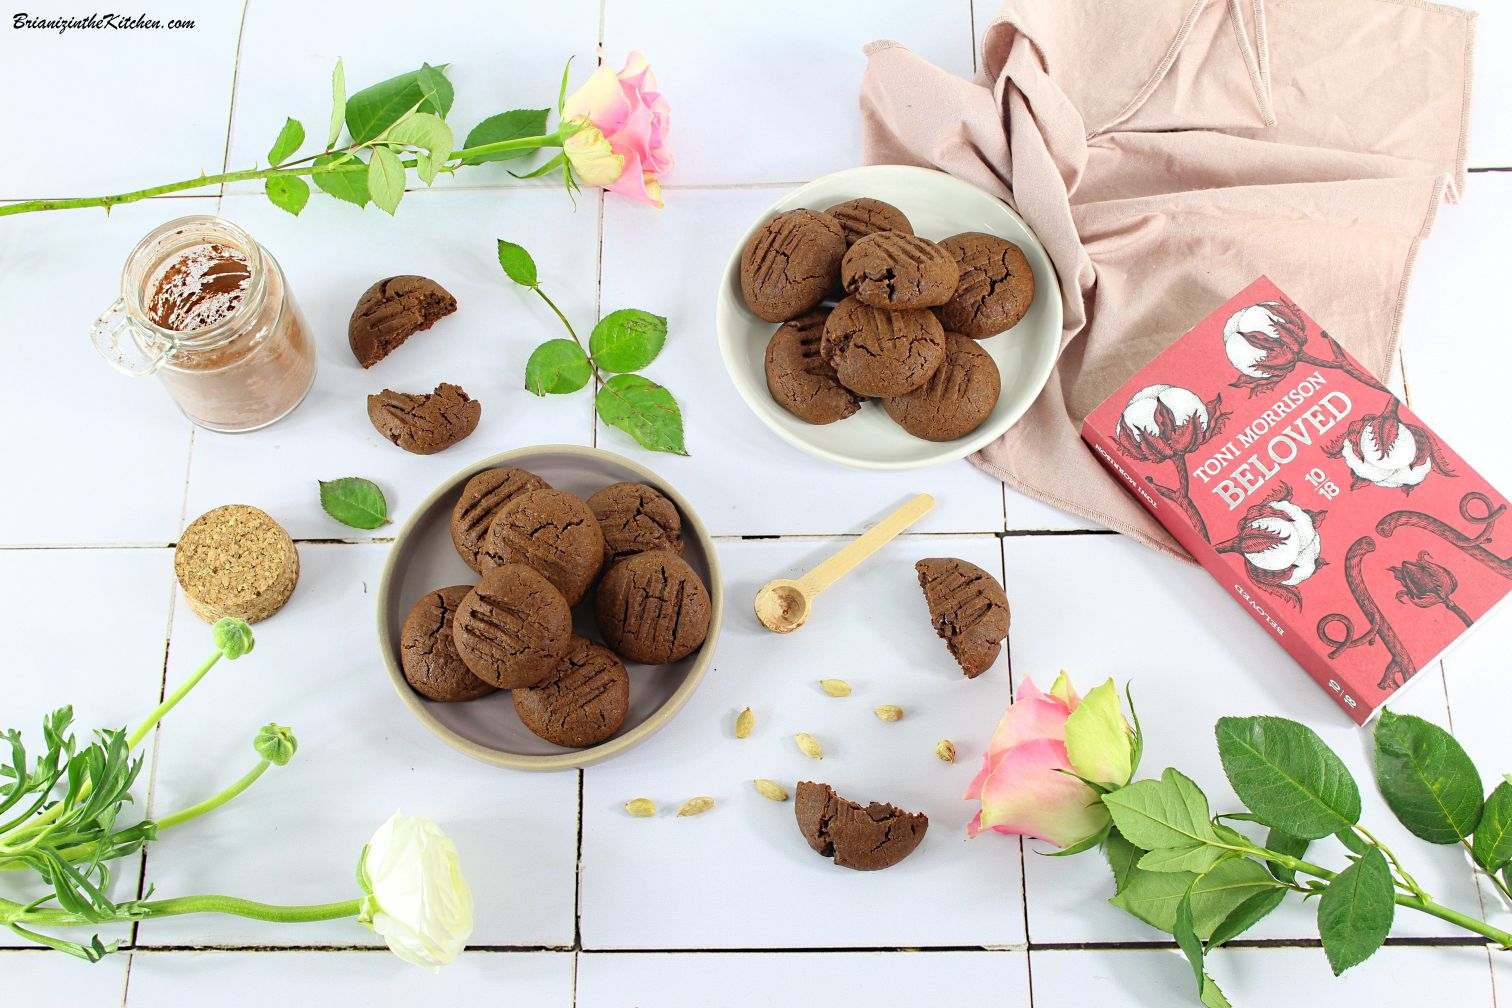 Biscuits Chocolat et Cardamome